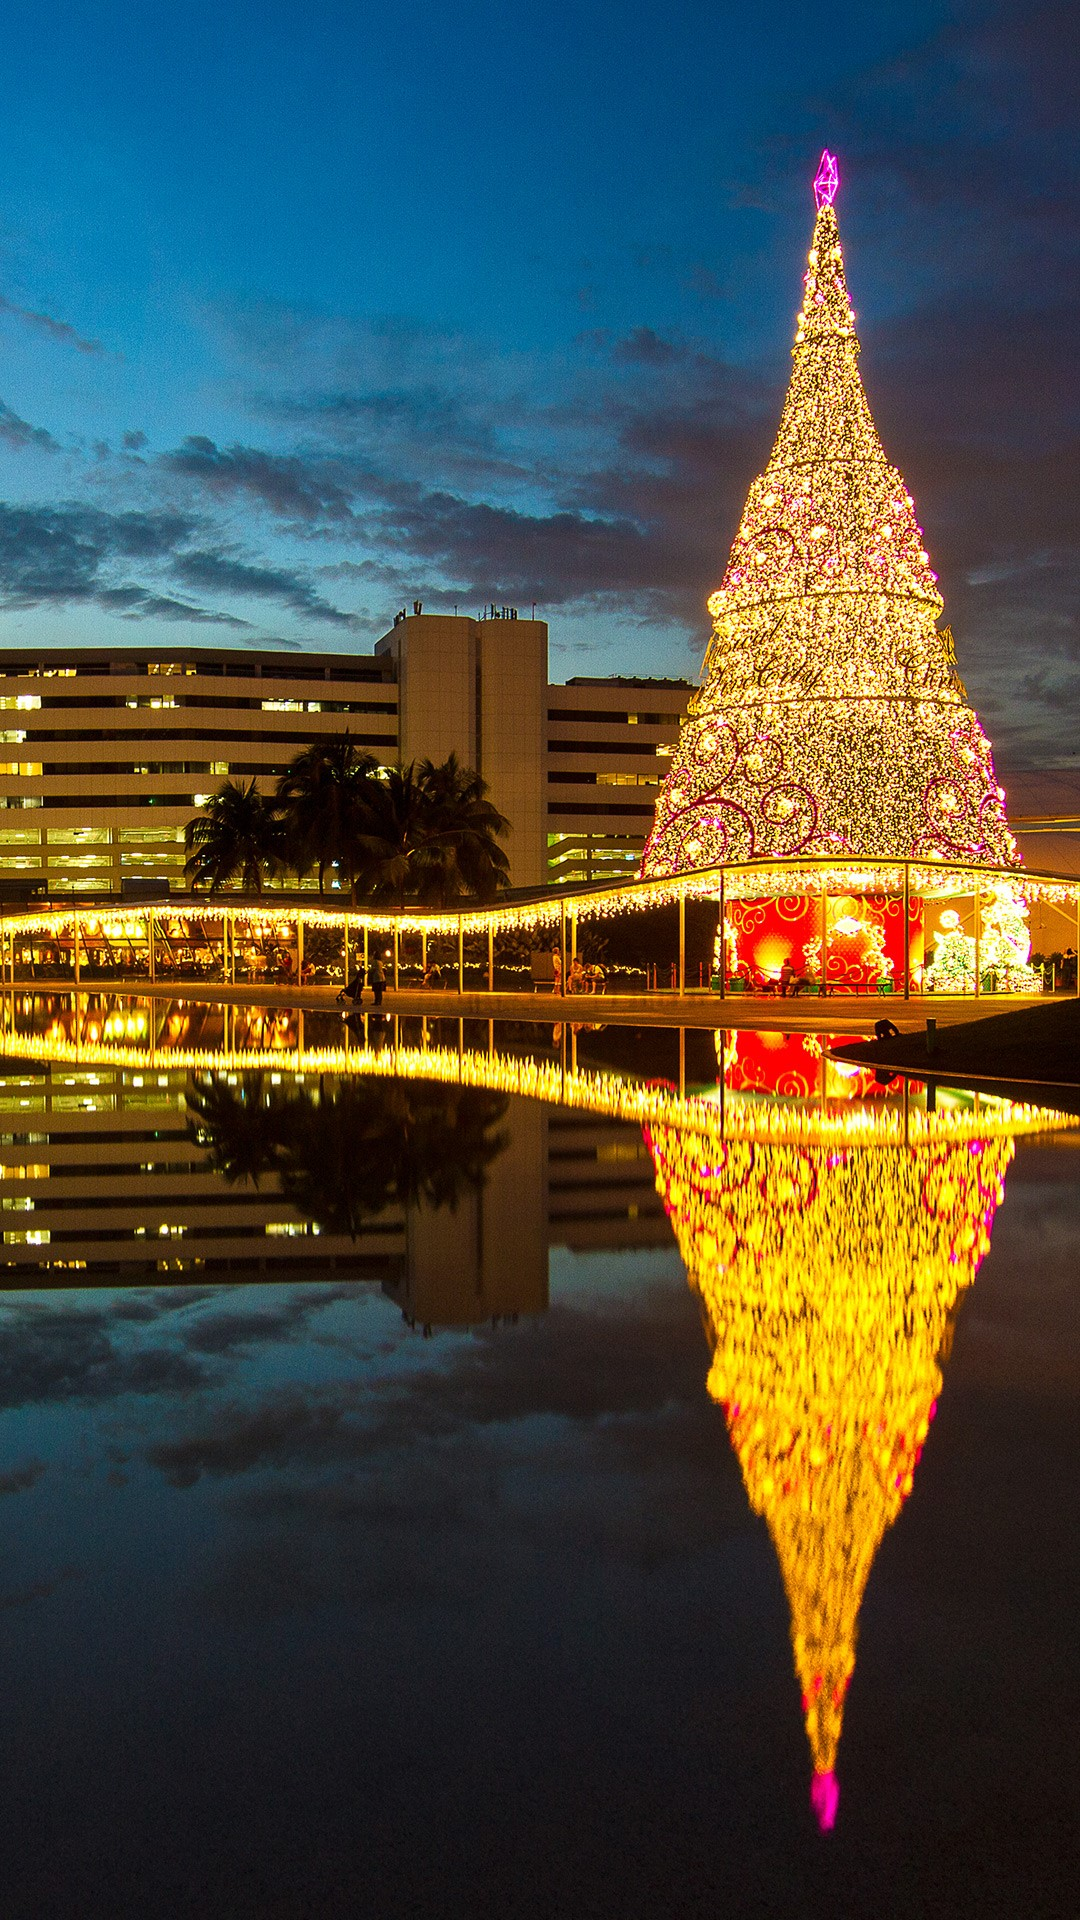 An illuminated Christmas Tree next to a shopping mall in Singapore | Windows 10 Spotlight Images